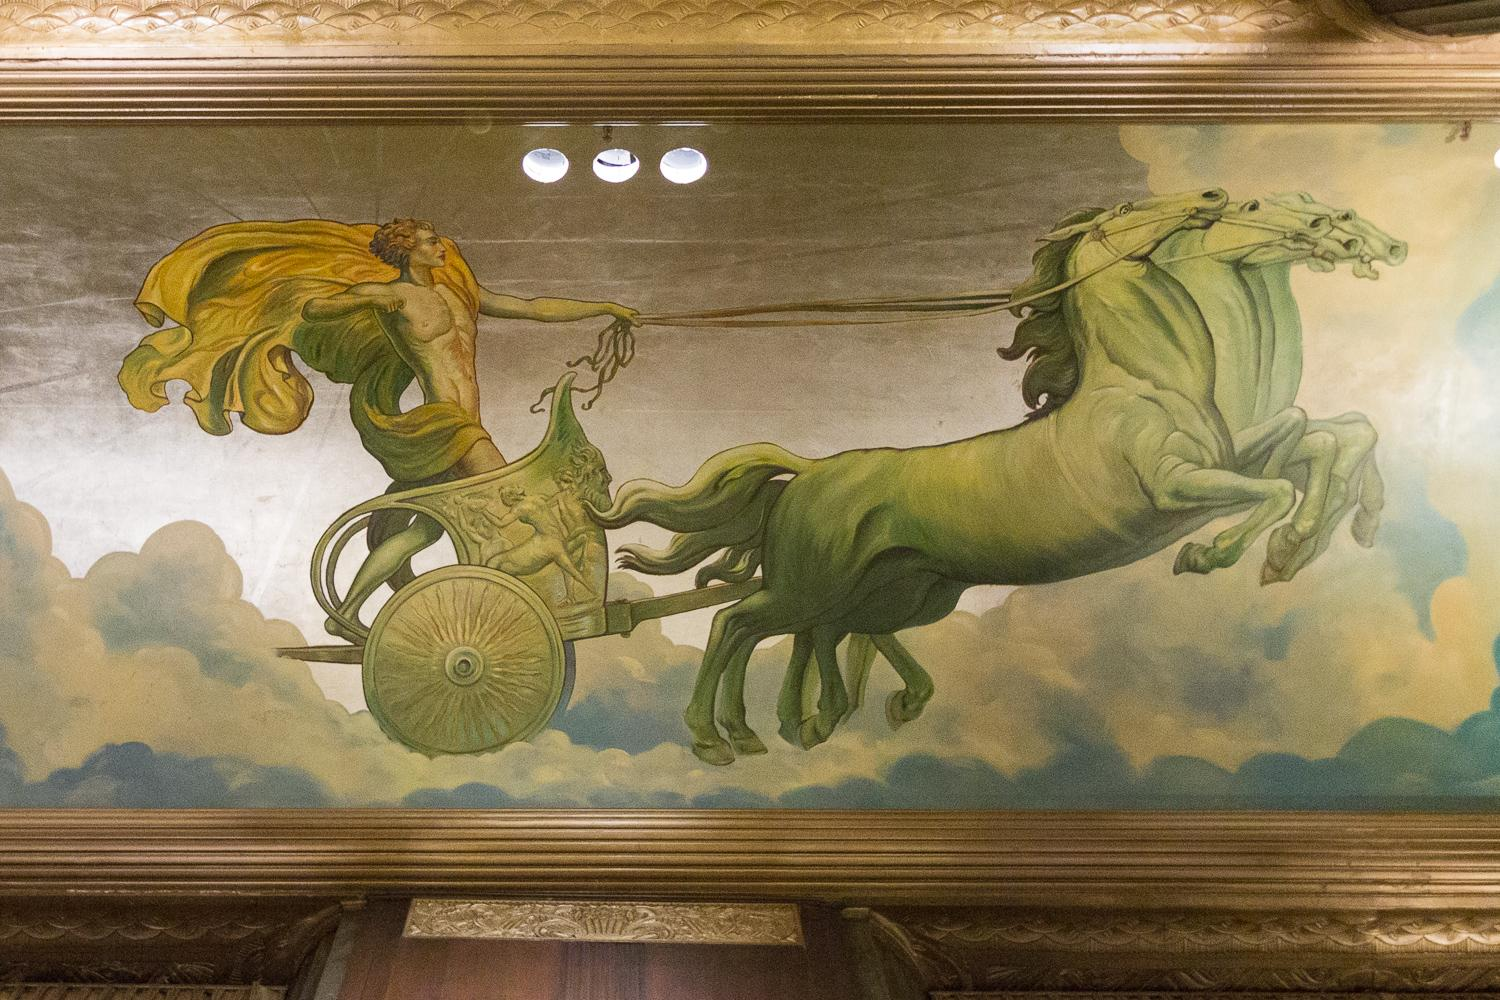 Mural of Apollo, found in the Apollo Gallery vestibule / Image: Daniel Smyth Photography